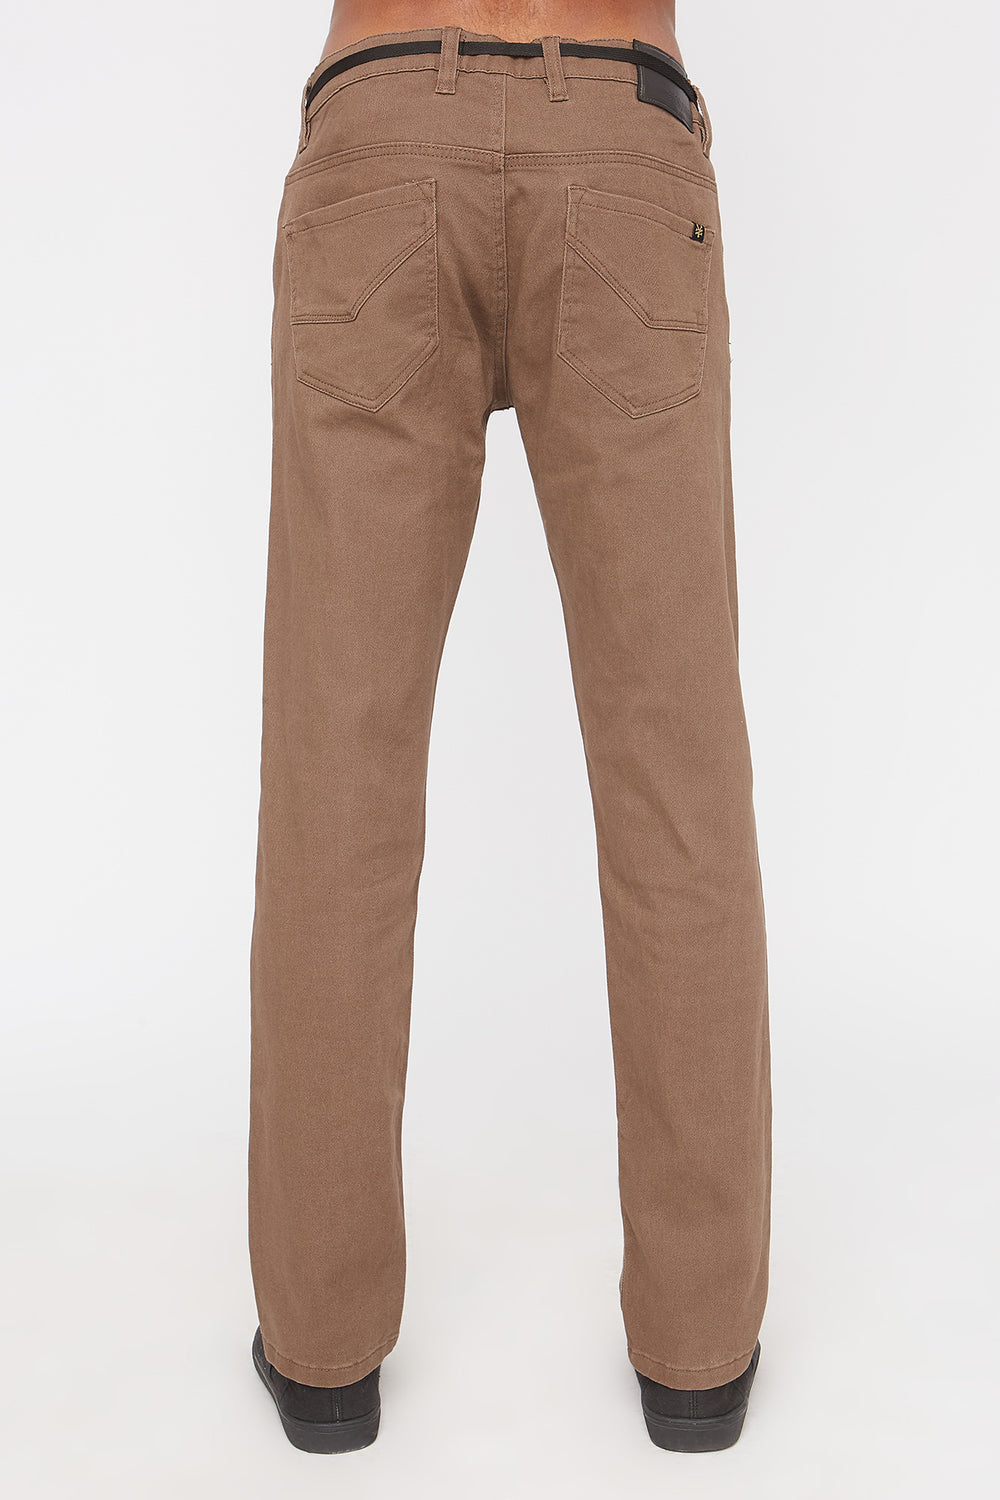 Zoo York Mens Stretch Skinny Jeans Brown